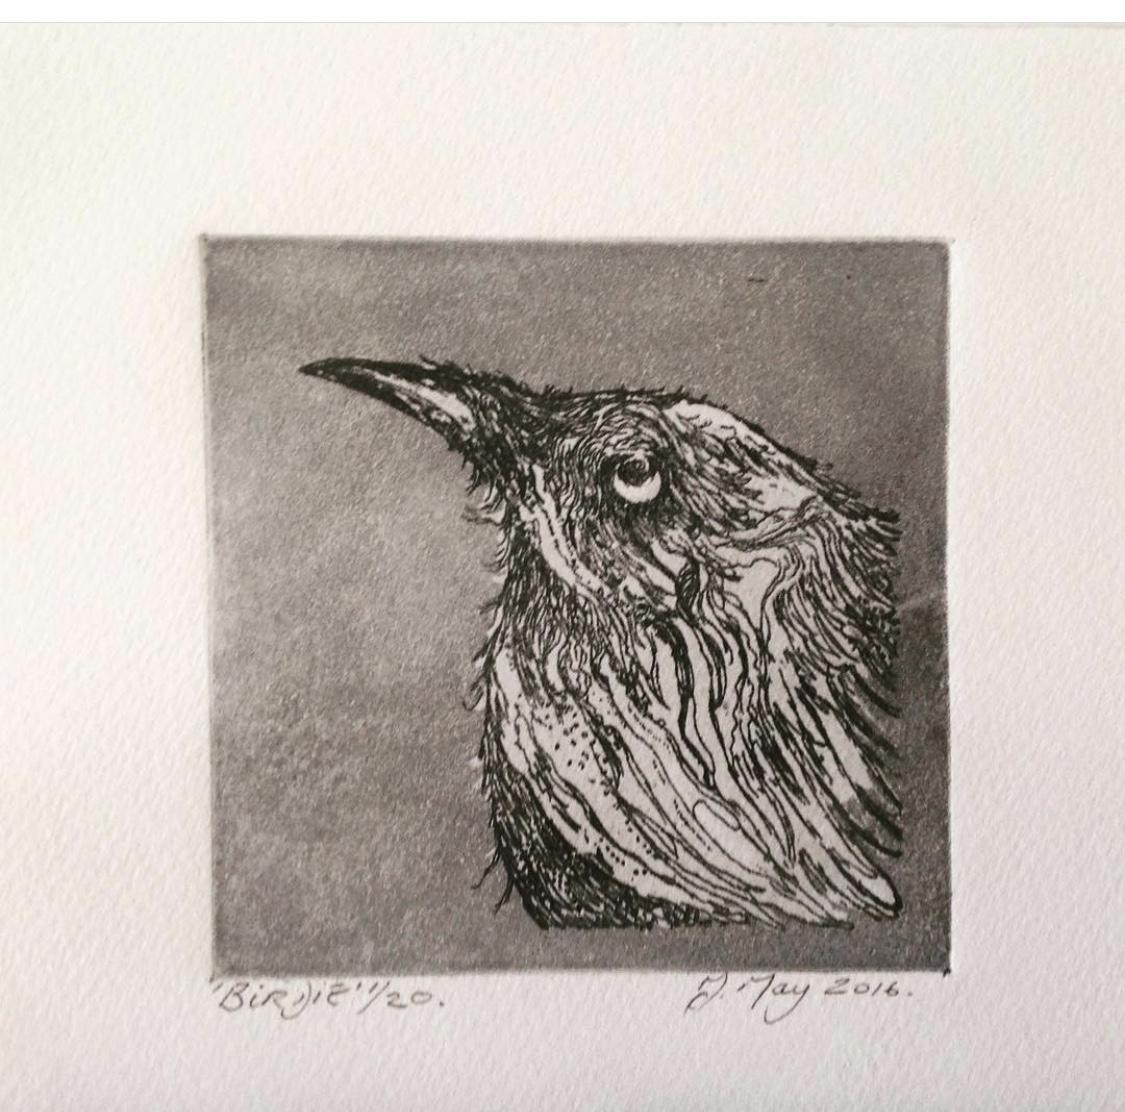 Intaglio and Dry Point hand pulled Print work.